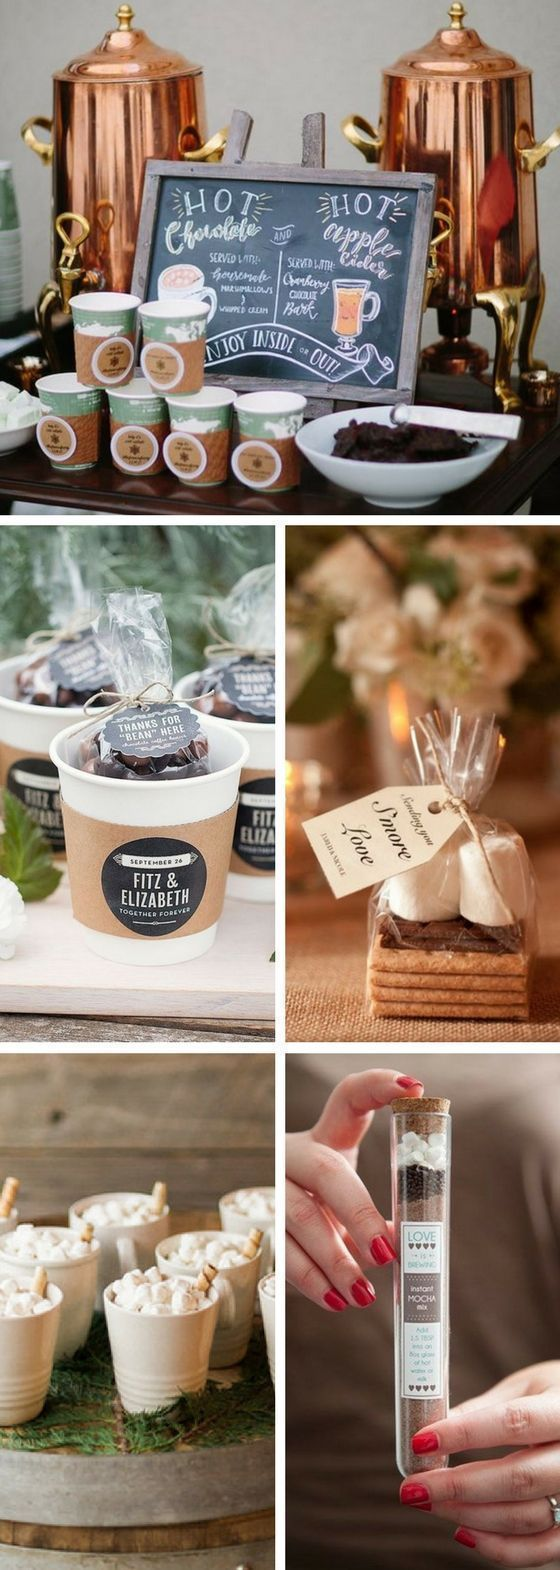 Cheap Wedding Favors Ideas For Guests Find Fantastic Favor Ideas That Will Have Your Guests Smil Wedding Favors Cheap Cheap Favors Inexpensive Wedding Favors